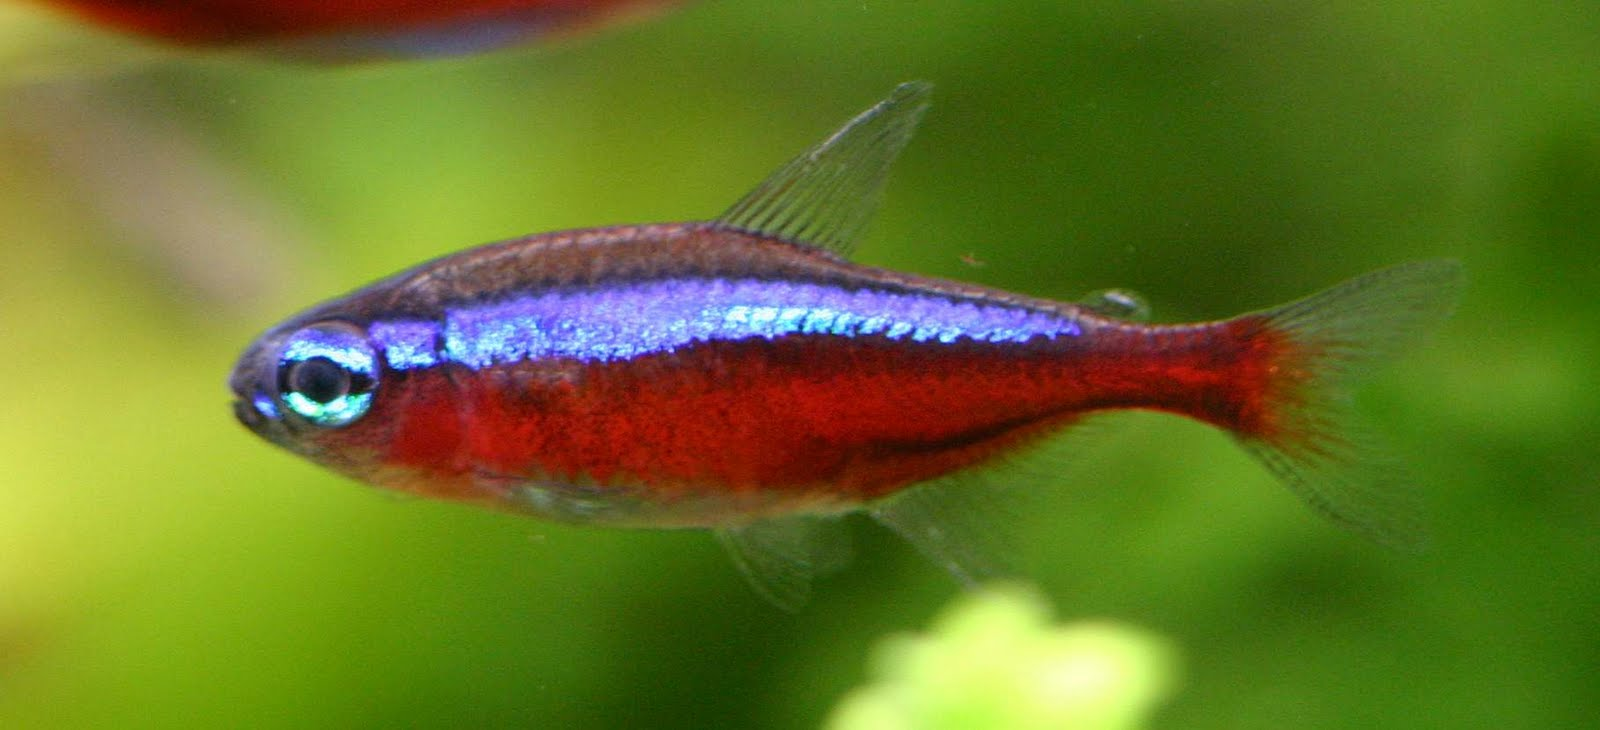 Cardinal Tetra Images & Pictures - Becuo